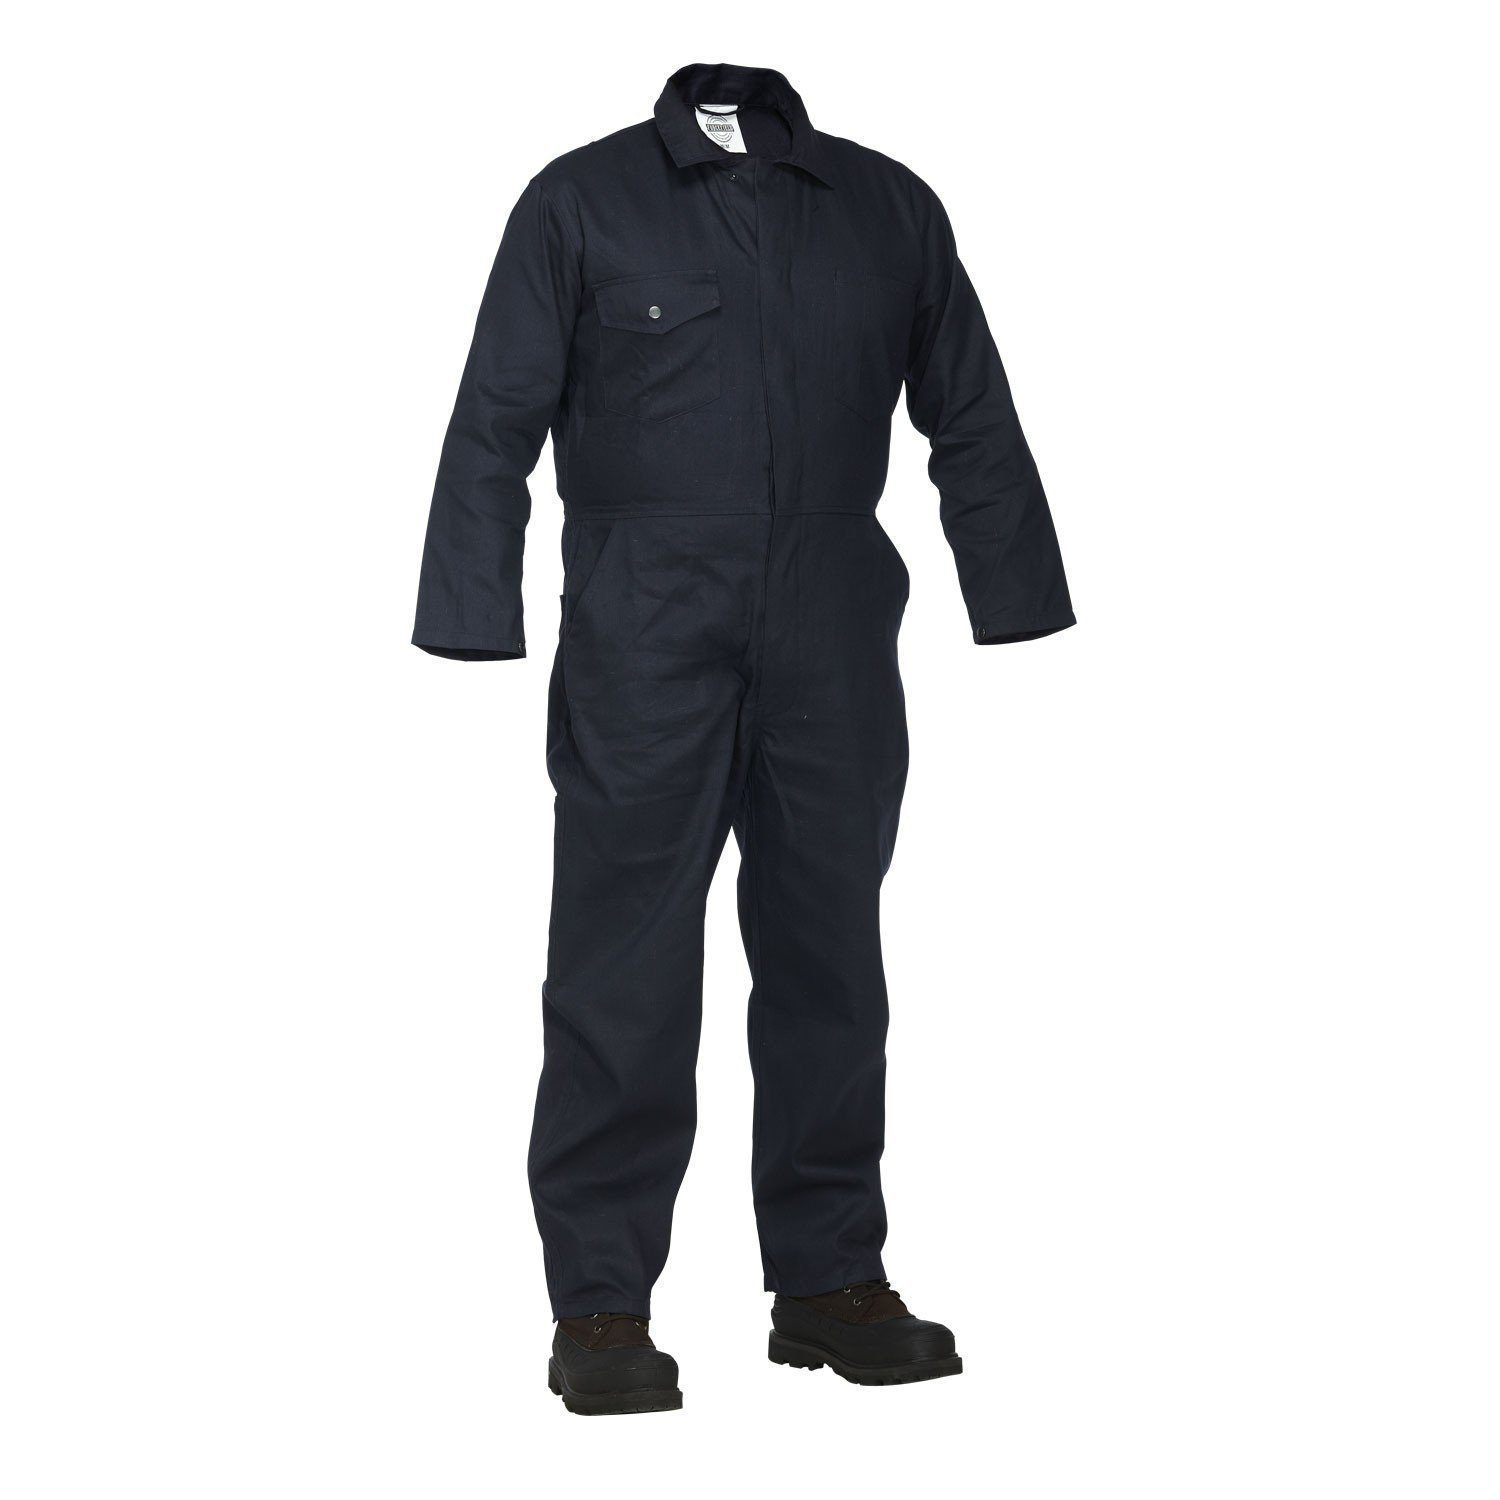 Forcefield Welders Coveralls, cotton, button front 024-4500